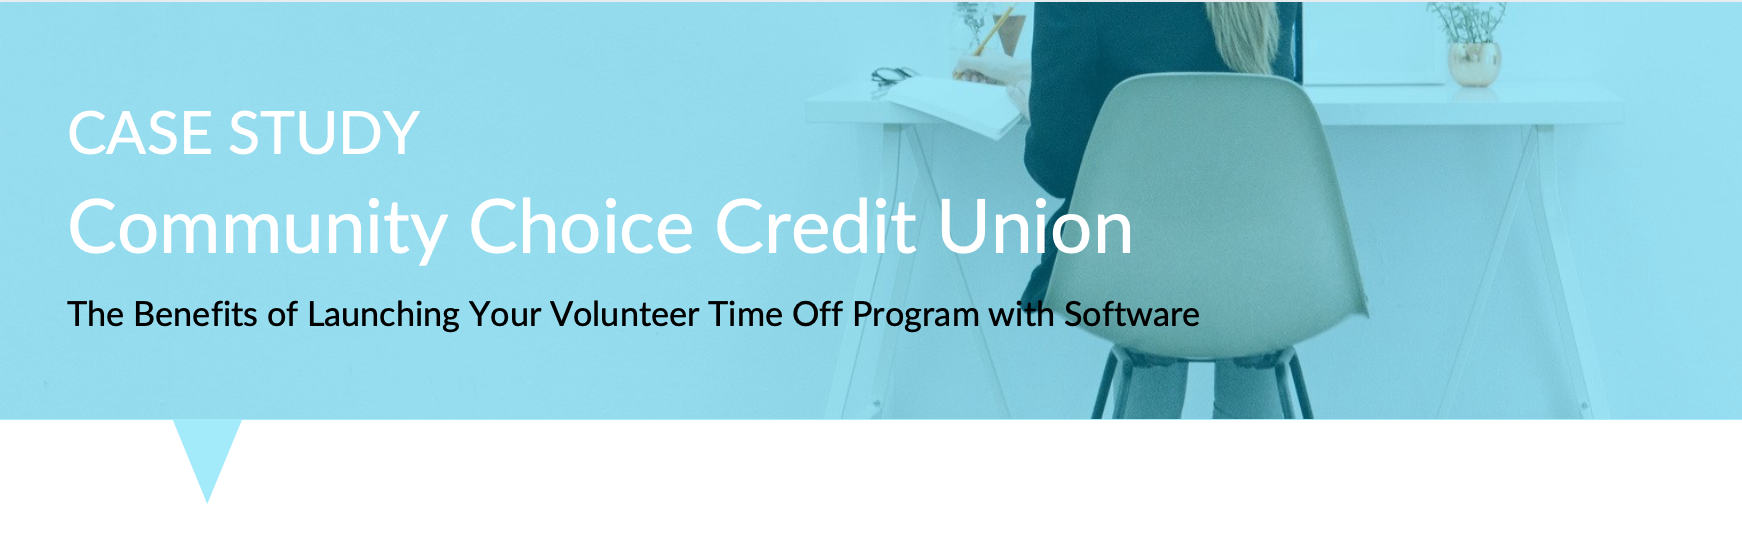 Volunteer Time Off Case Study, Credit Union